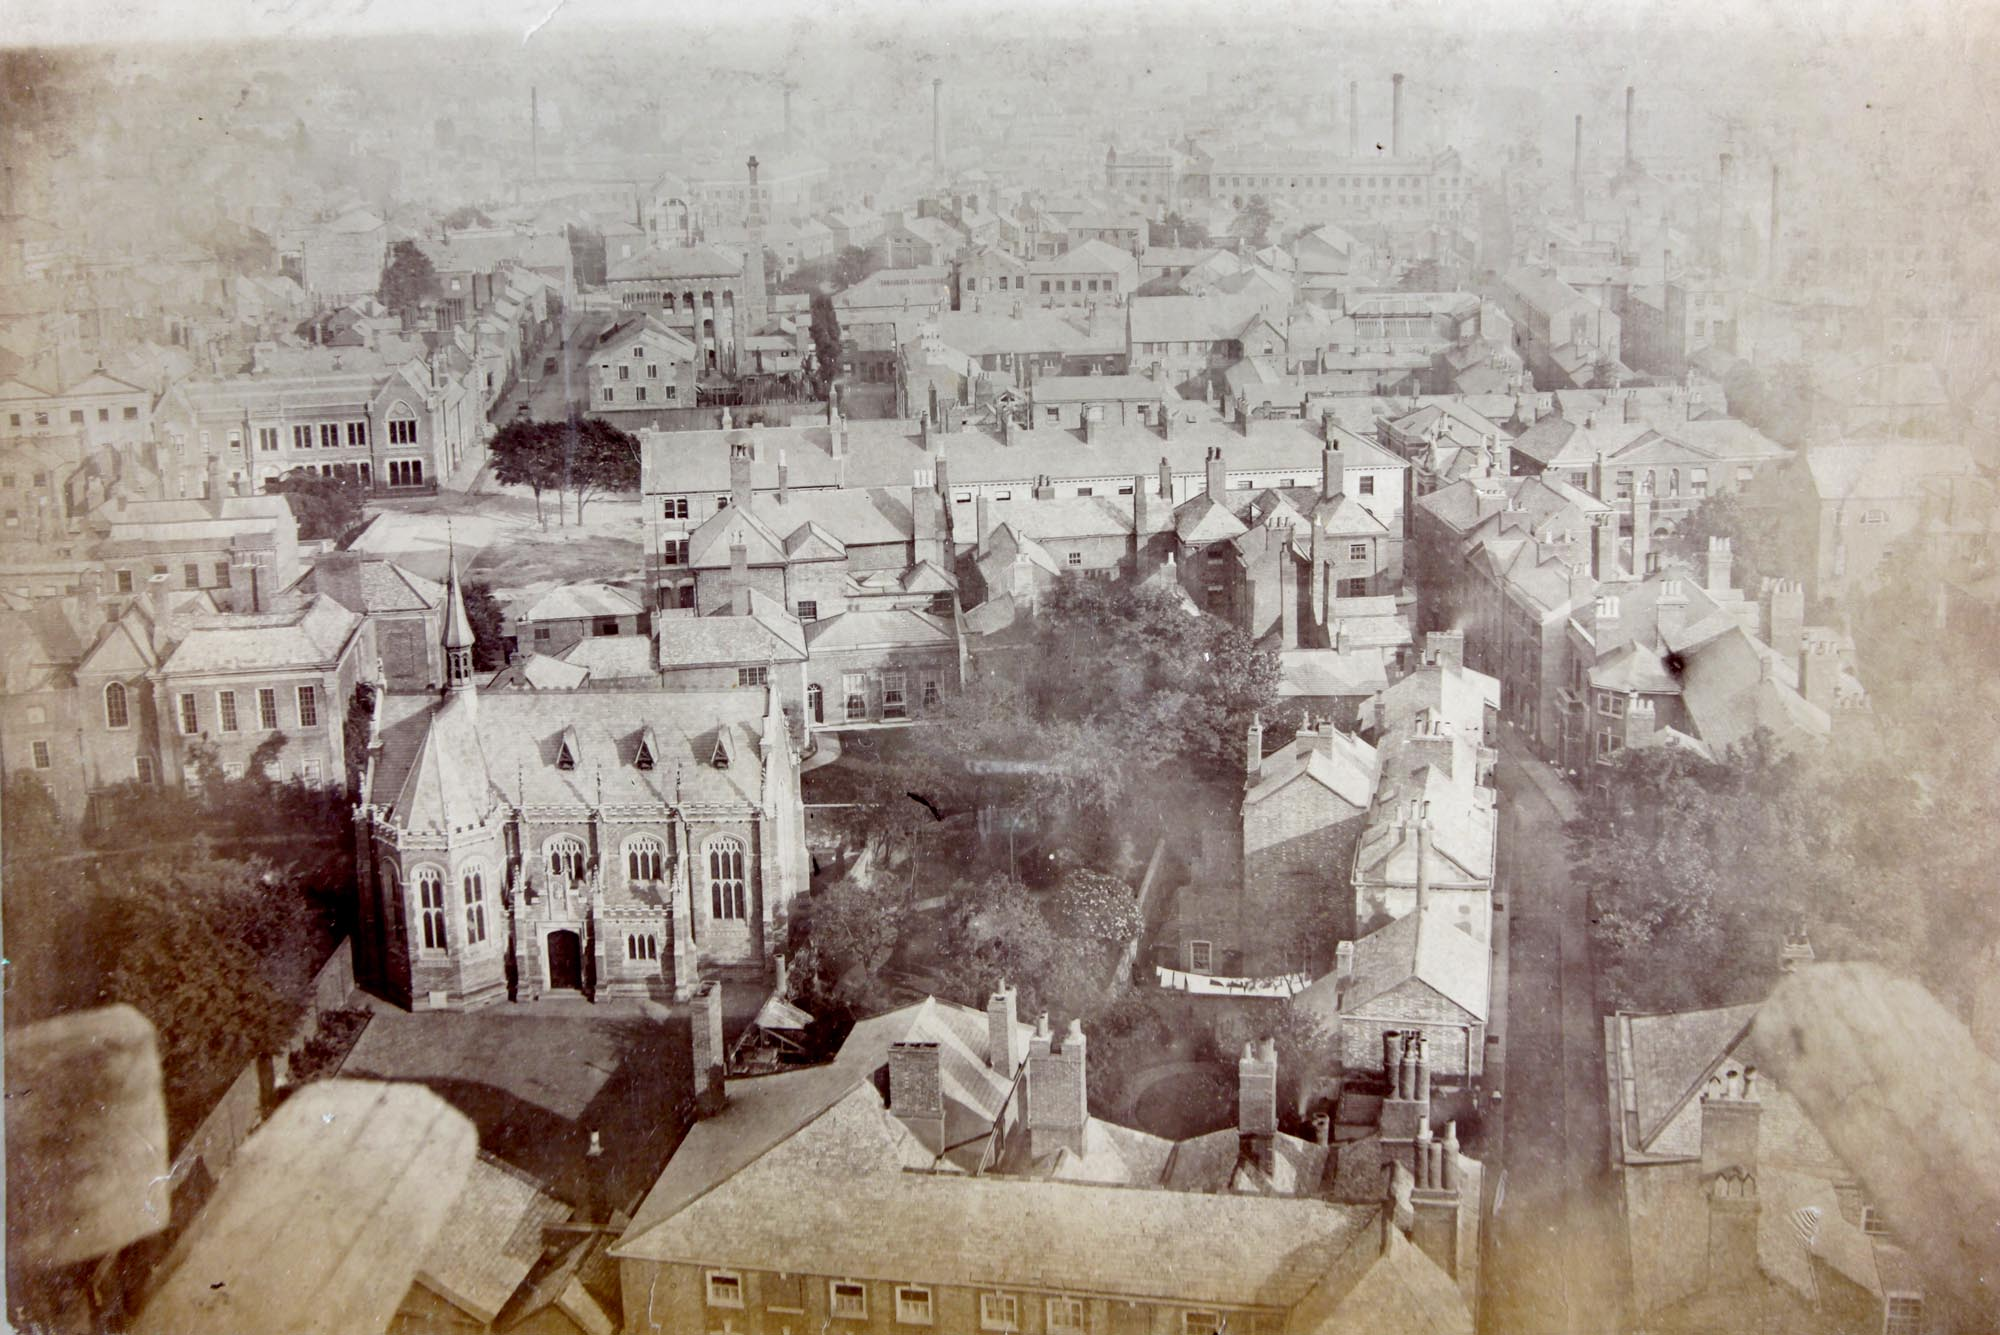 The Grey Friars site from St Martin's steeple in 1867, looking south. In the foreground is the Alderman Newton's School (today the Richard III Visitor Centre) before it was extended in 1887 and 1897. Richard III's grave was found in the garden to the right of the school - Leicester Record Office